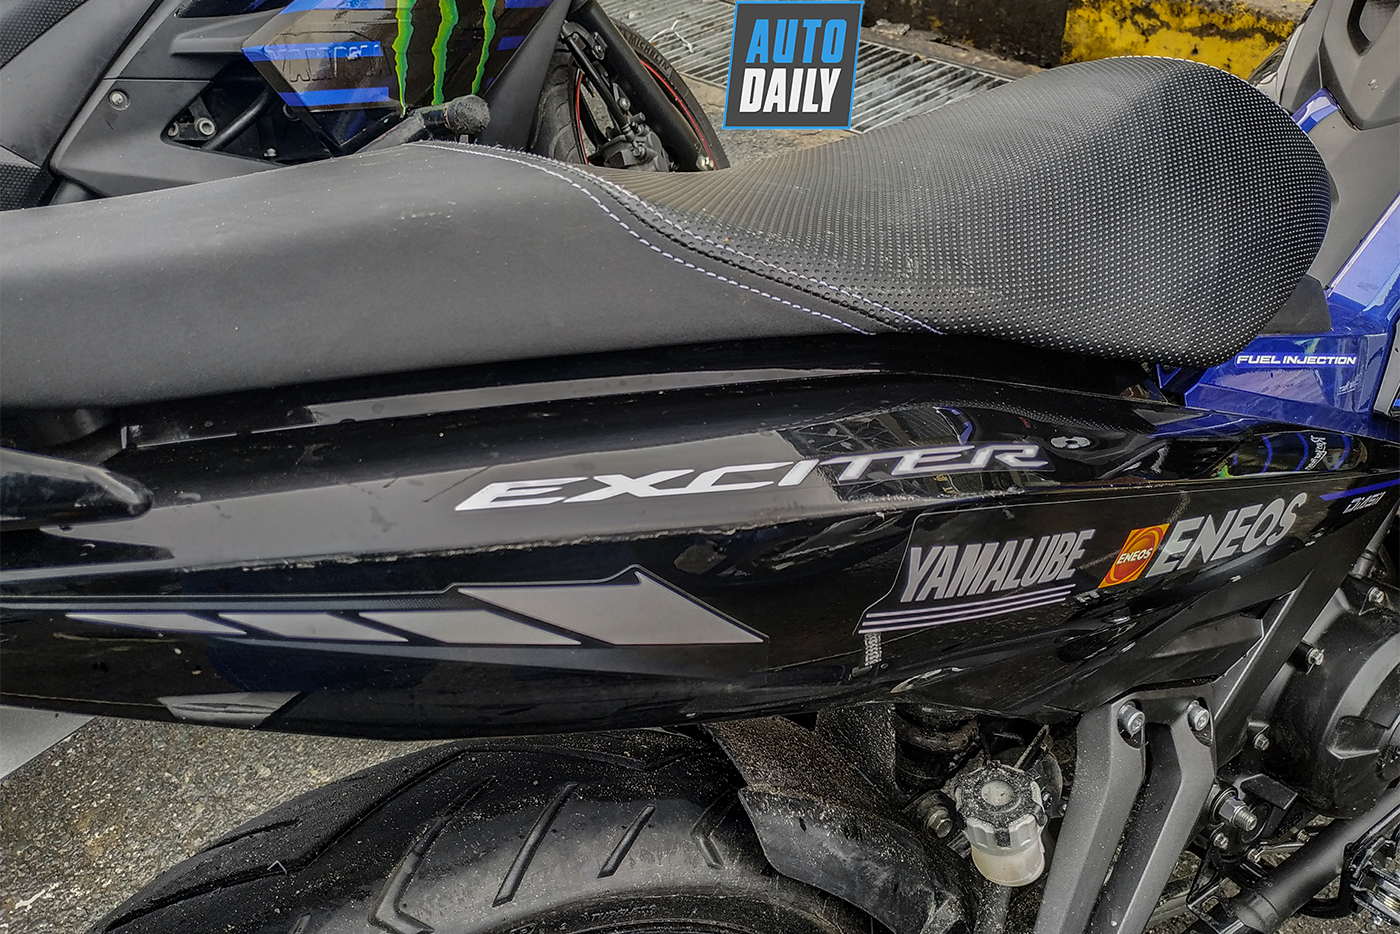 yamaha-exciter-150-monster-energy-28-1.jpg